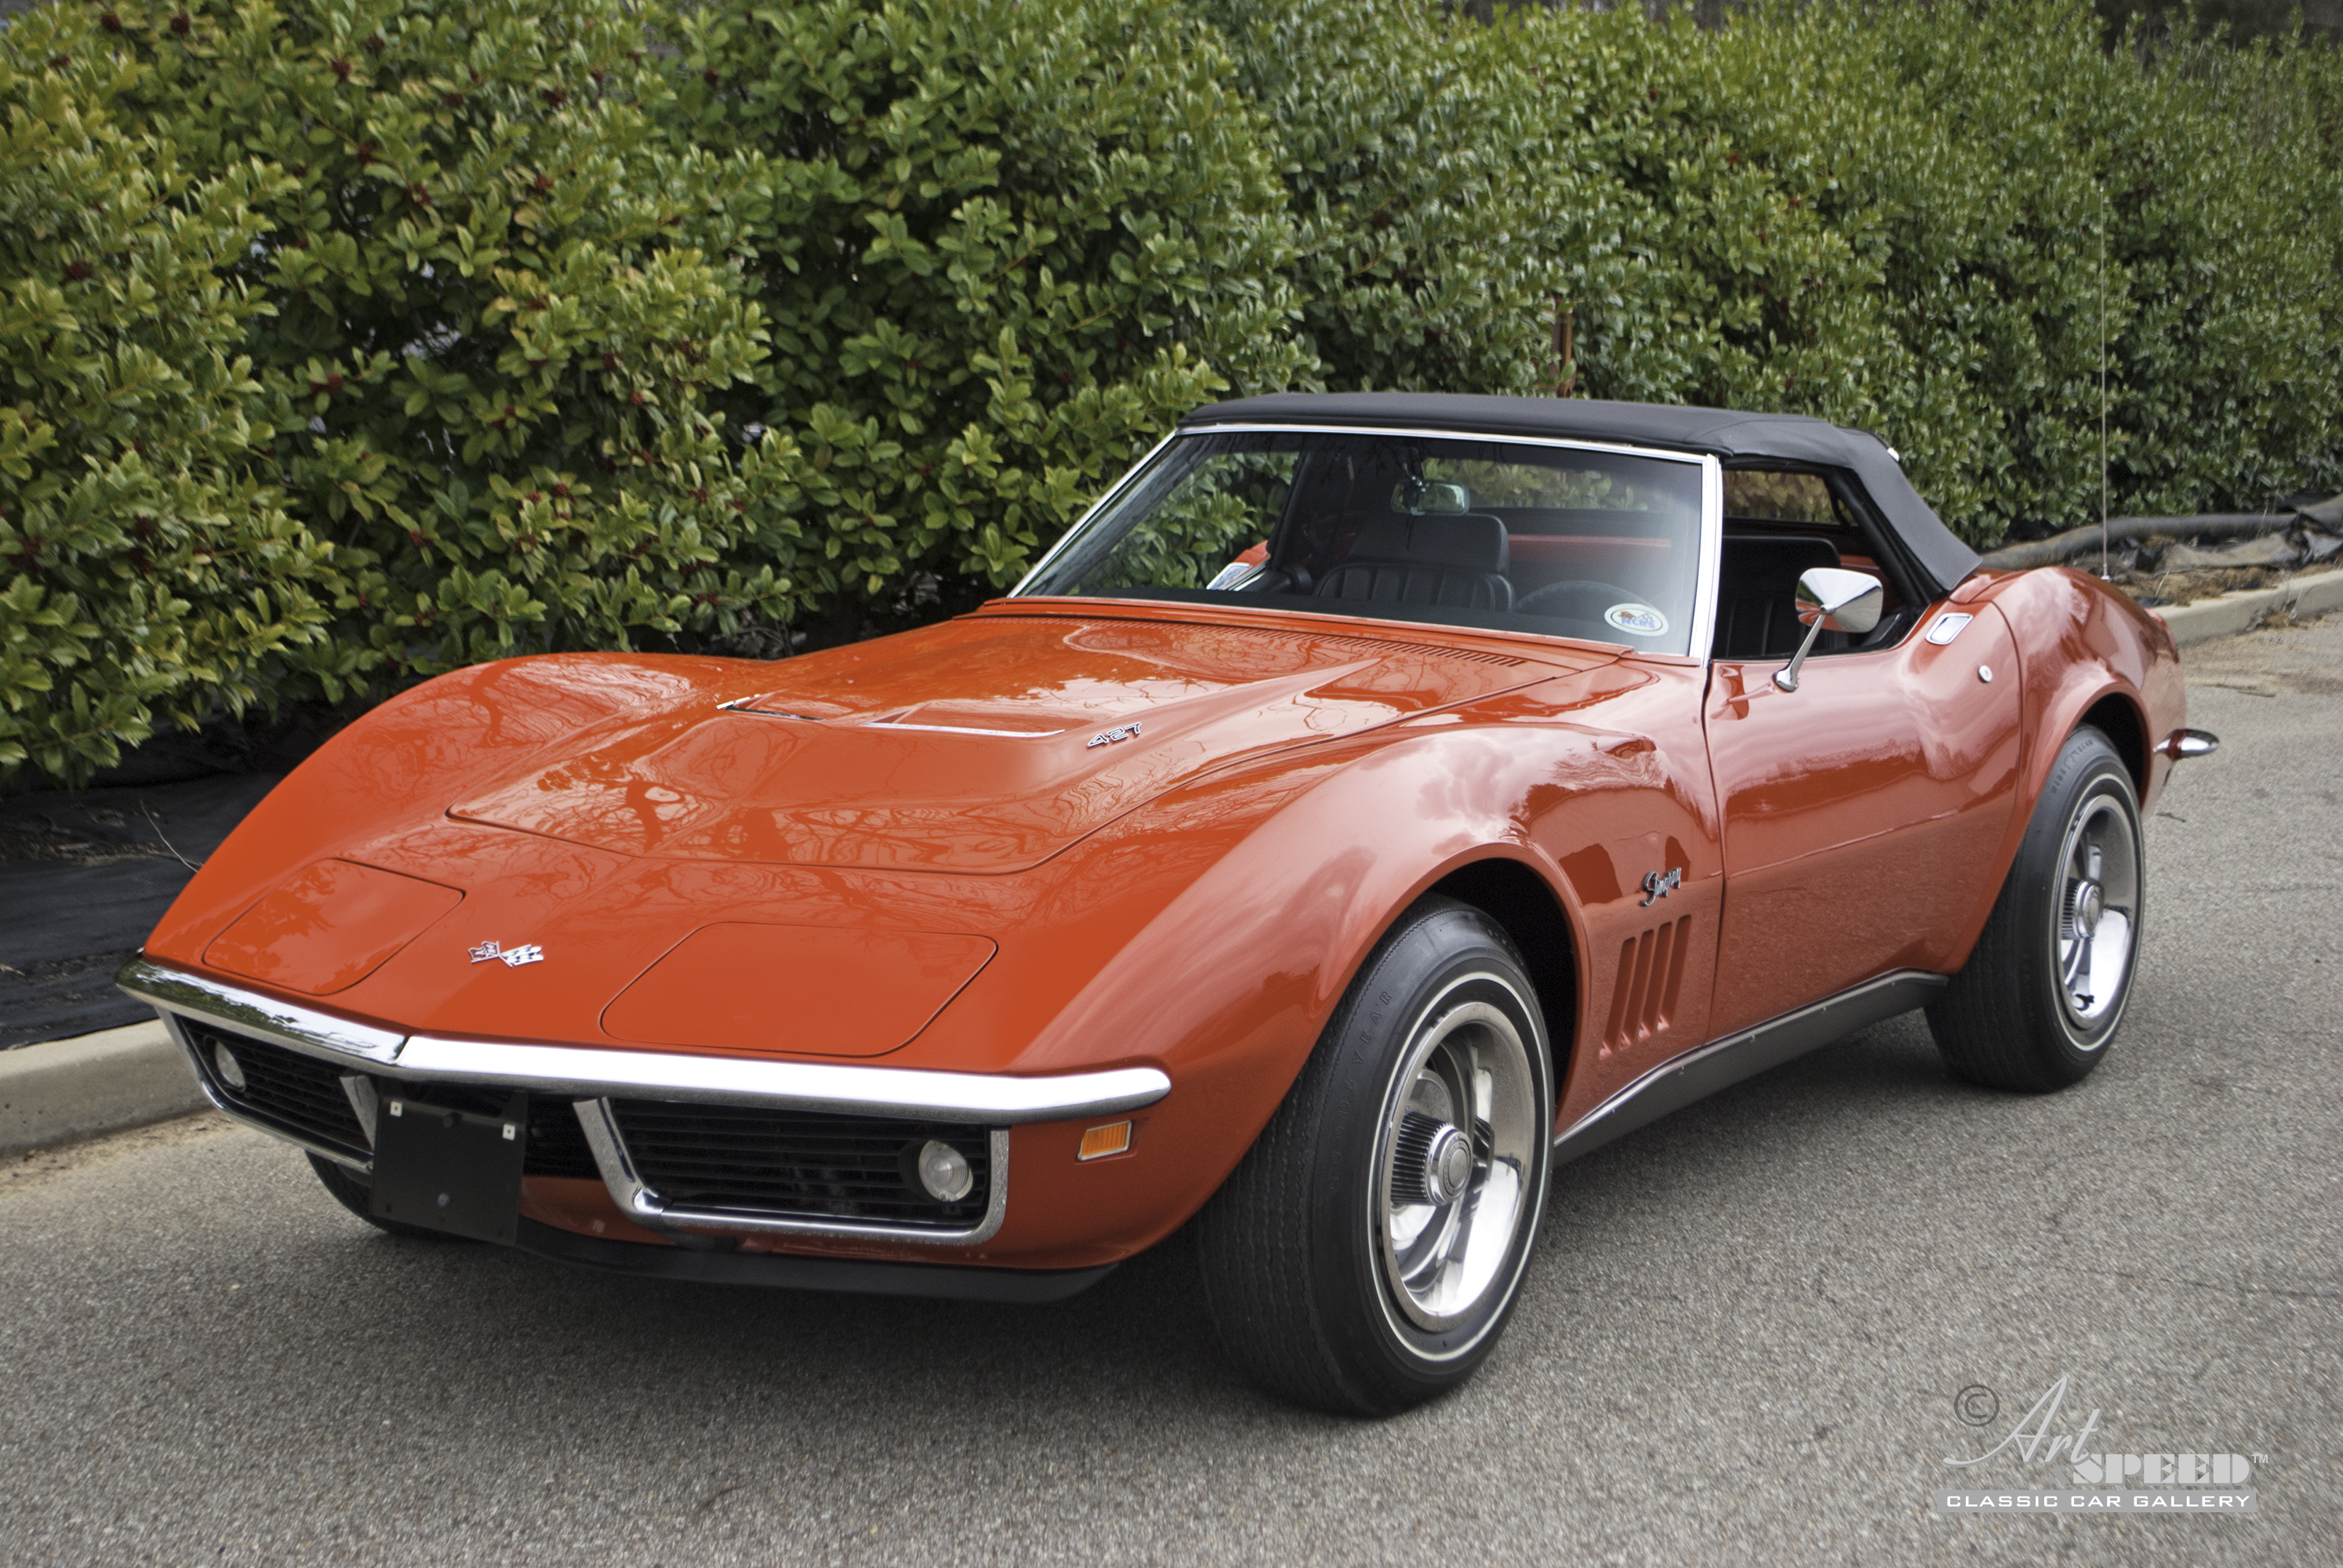 1969 Corvette Sold to Australia